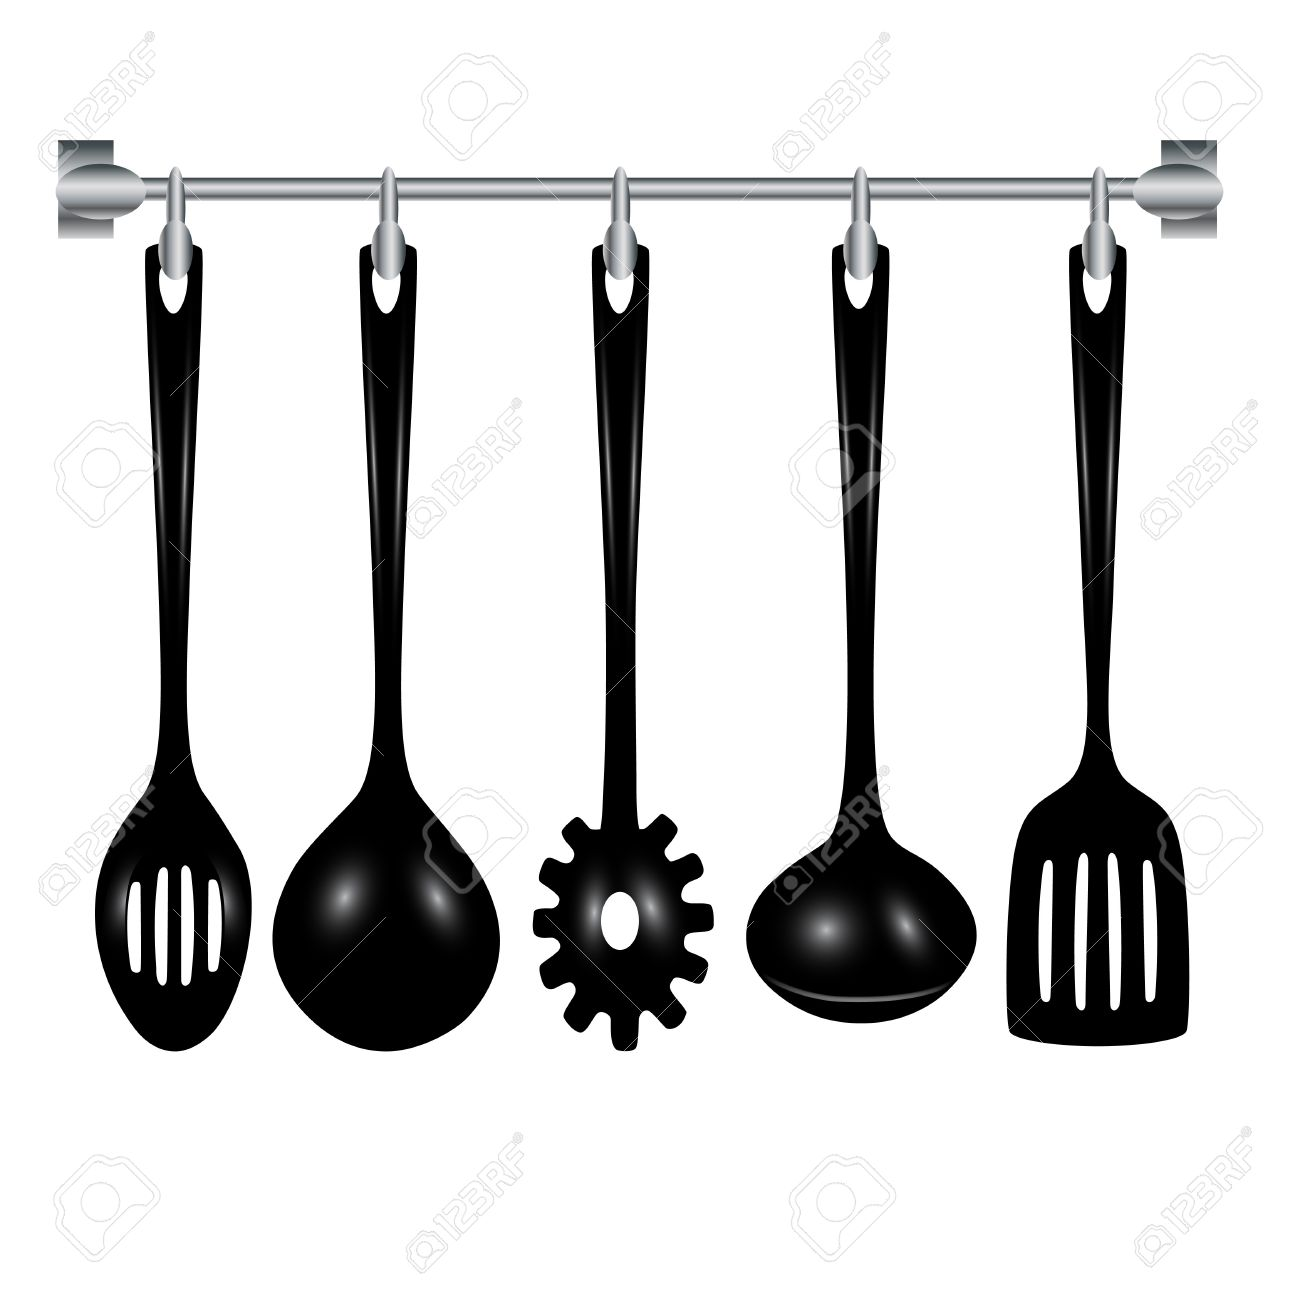 White Kitchen Utensils kitchen utensils hanging isolated on white royalty free cliparts